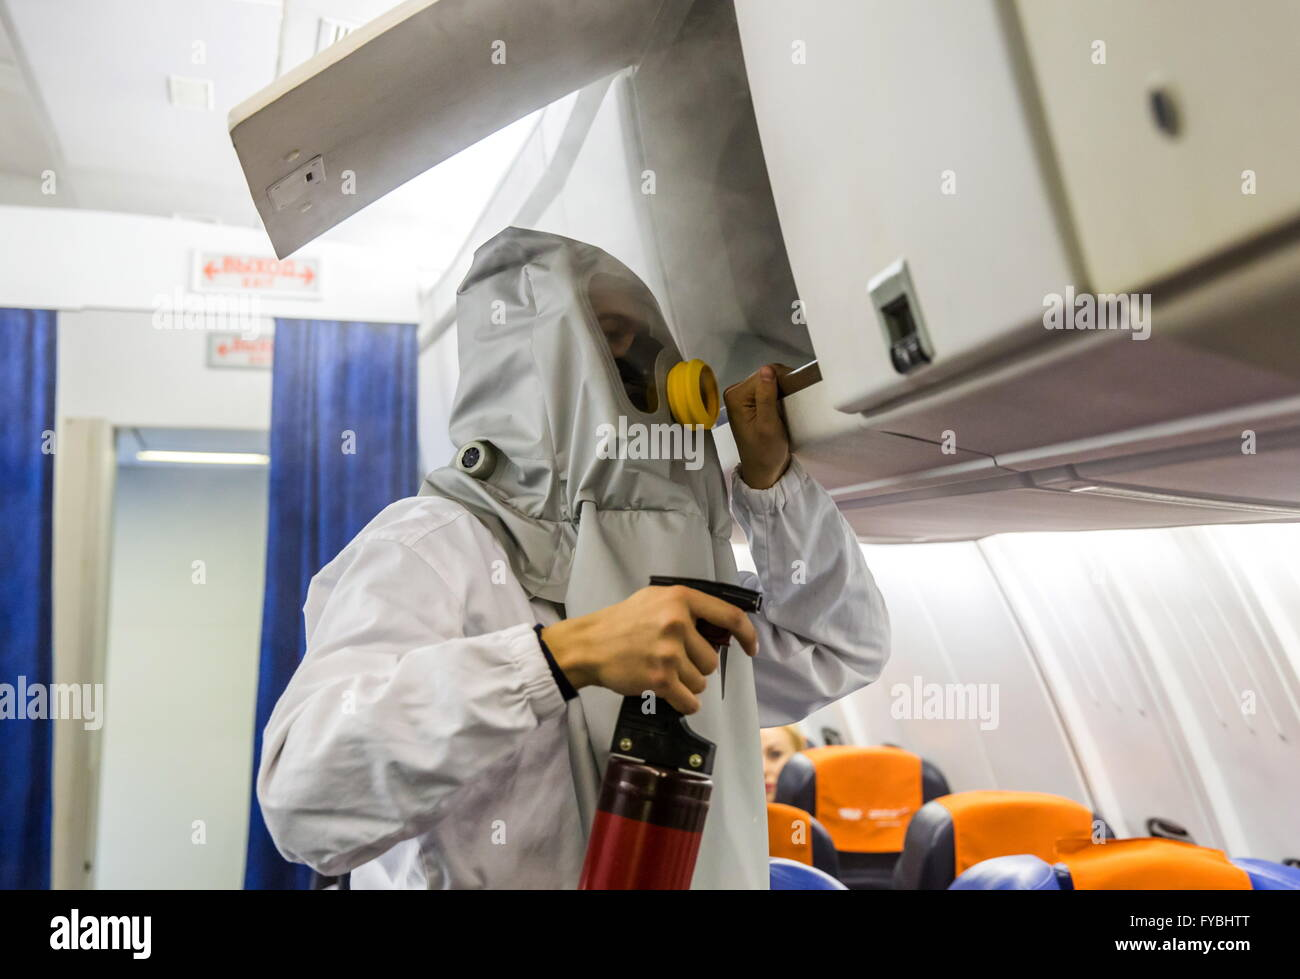 Moscow, Russia. 25th Apr, 2016. A flight attendant-to-be battling a fire on board a plane during a training session - Stock Image